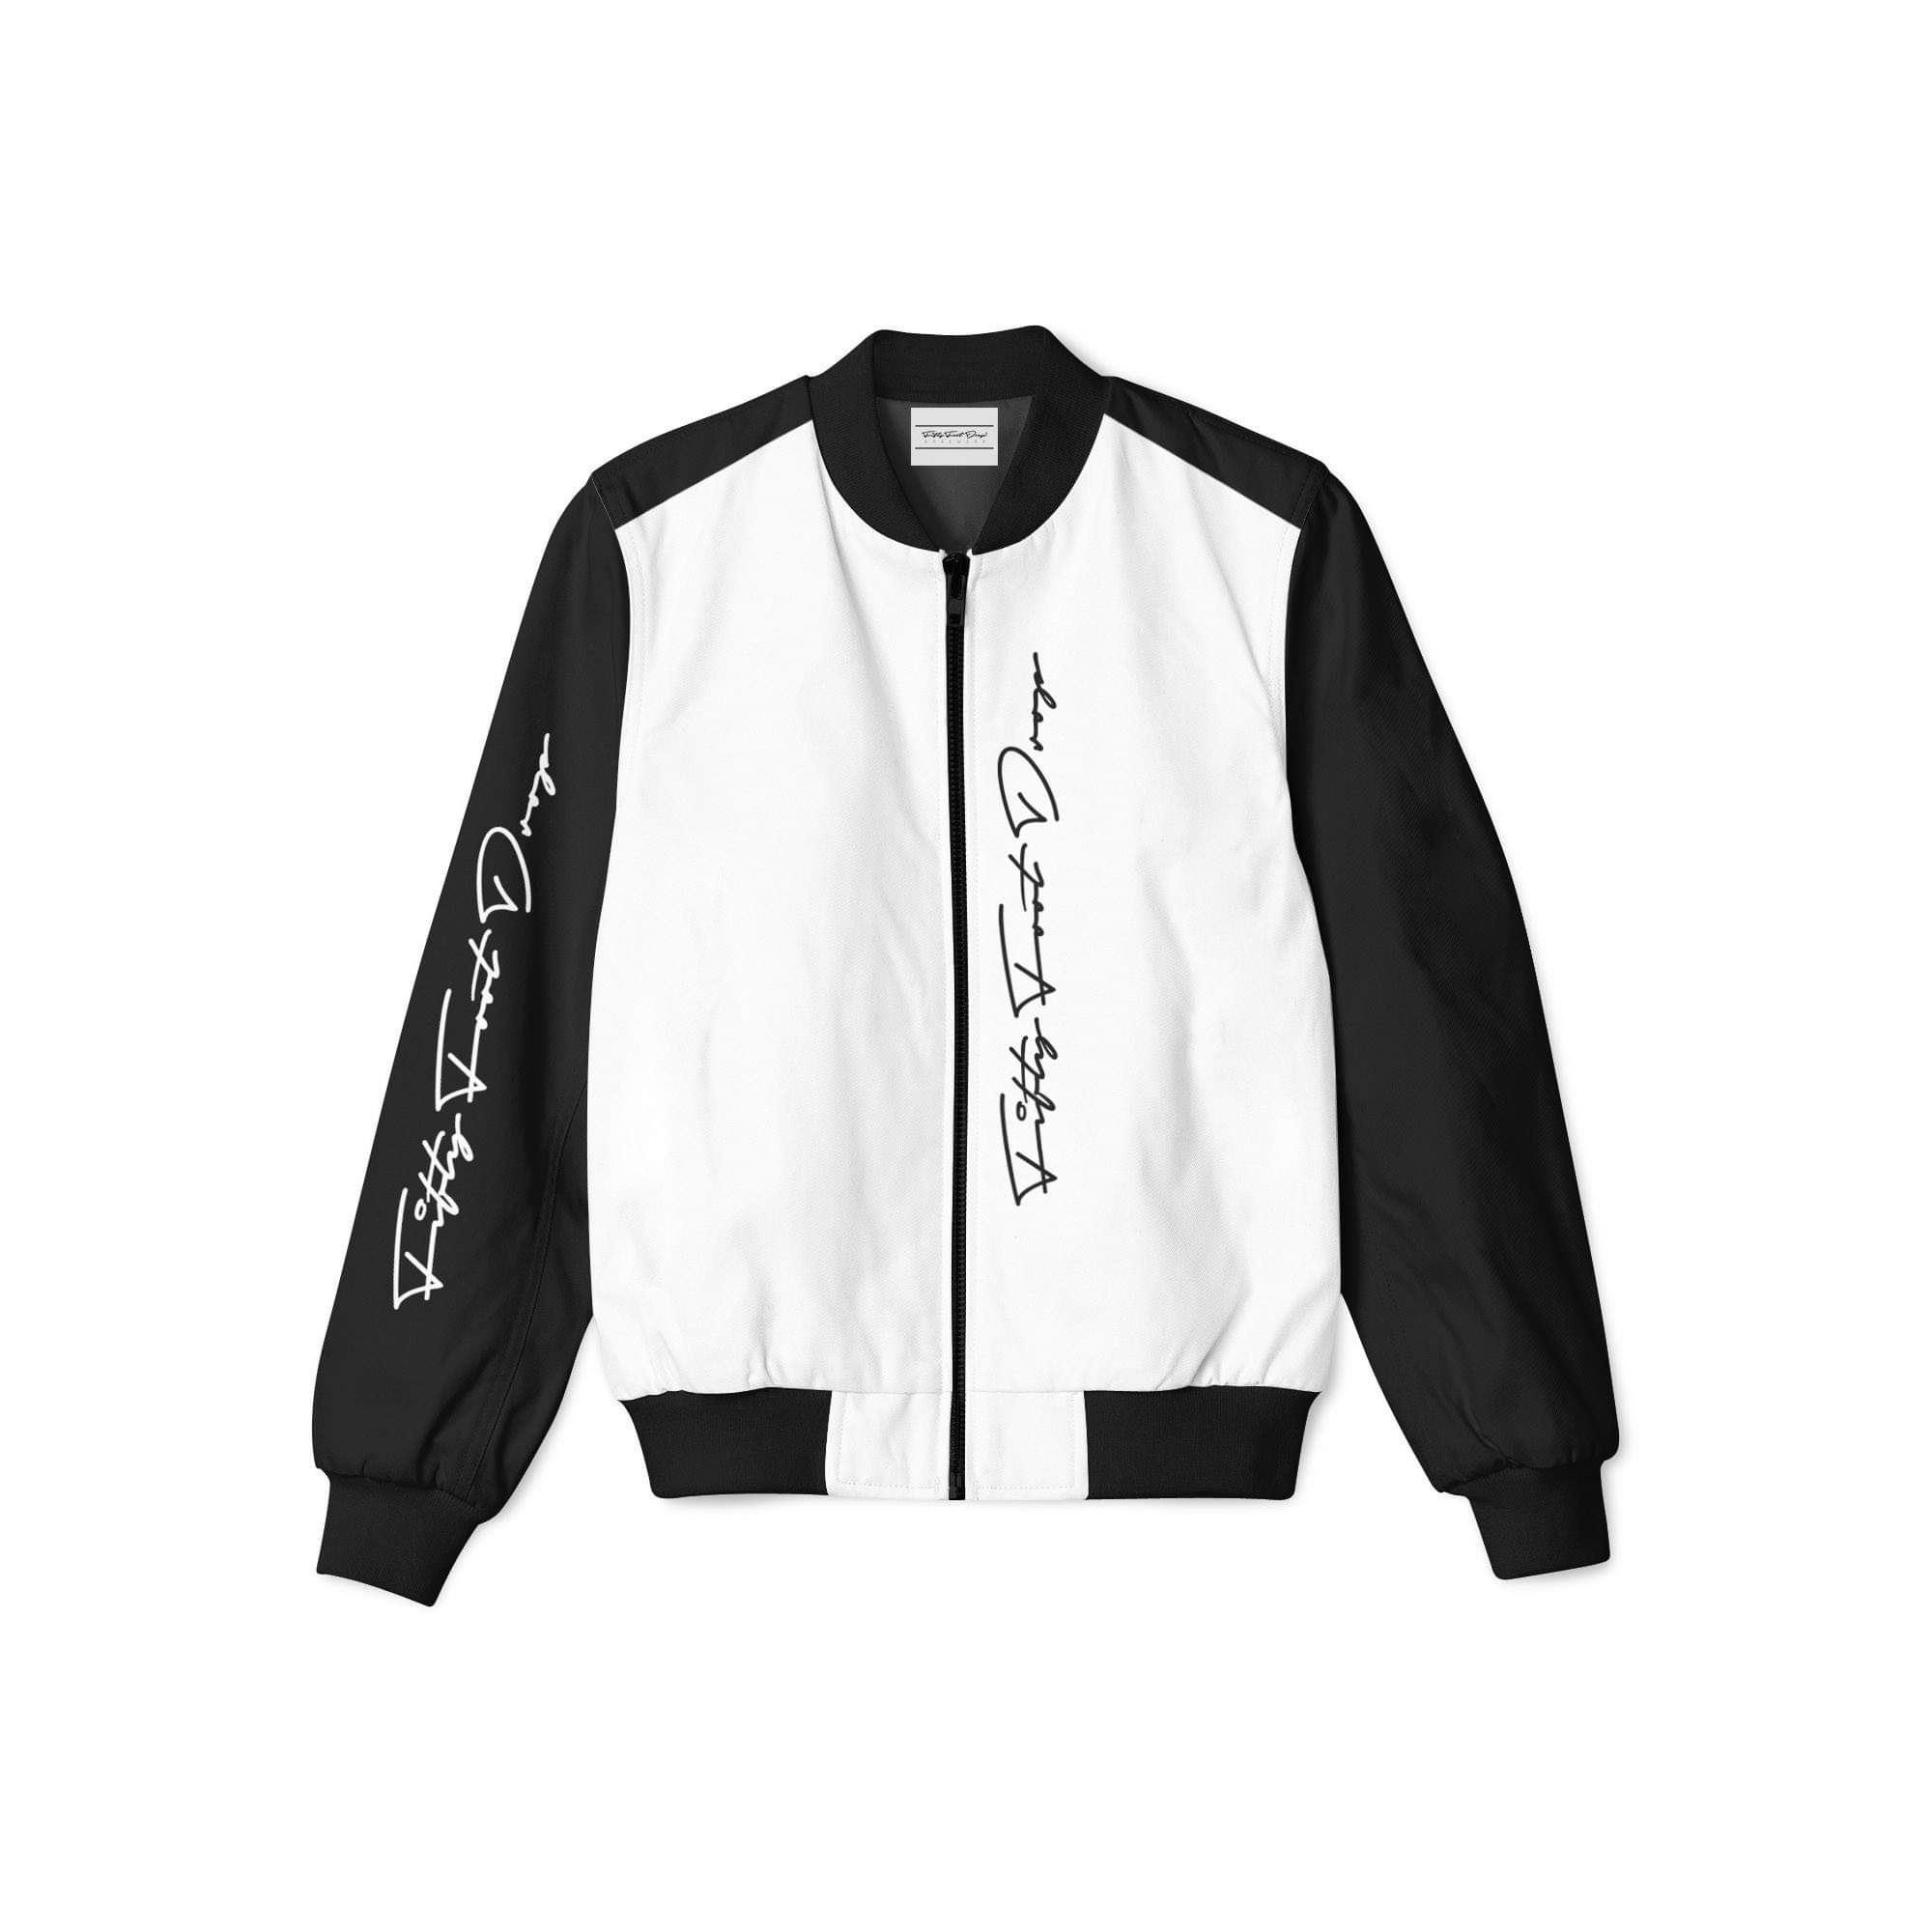 PANDA POWER - FIFTY FOOT DROP - BOMBER JACKET  Fifty Foot Drop  fresh-on-road.myshopify.com Fifty Foot Drop